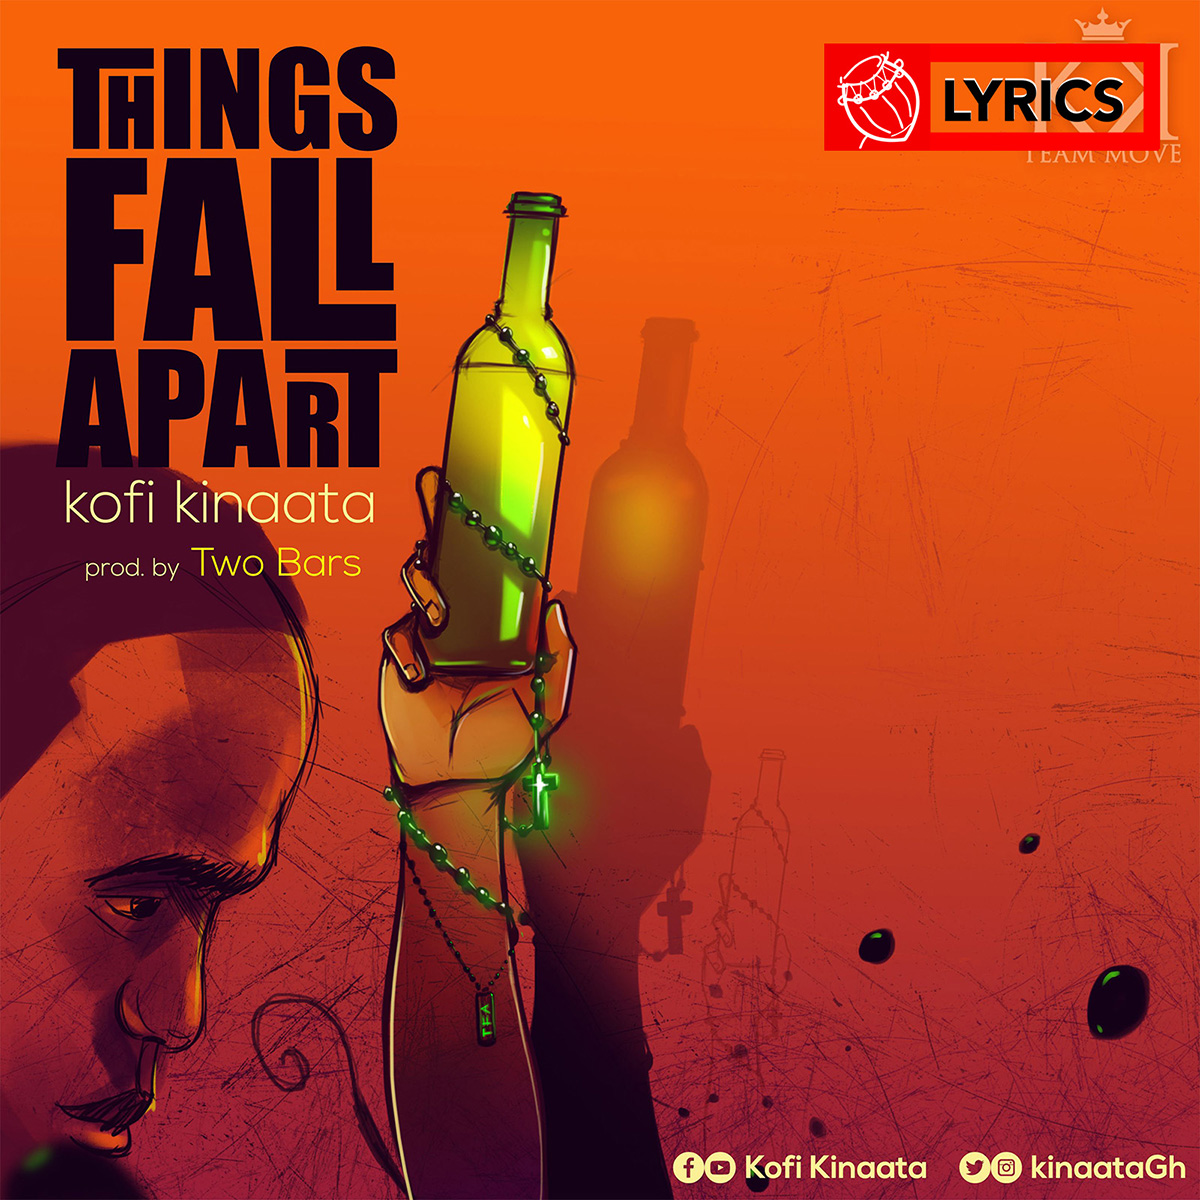 Lyrics: Things Fall Apart by Kofi Kinaata